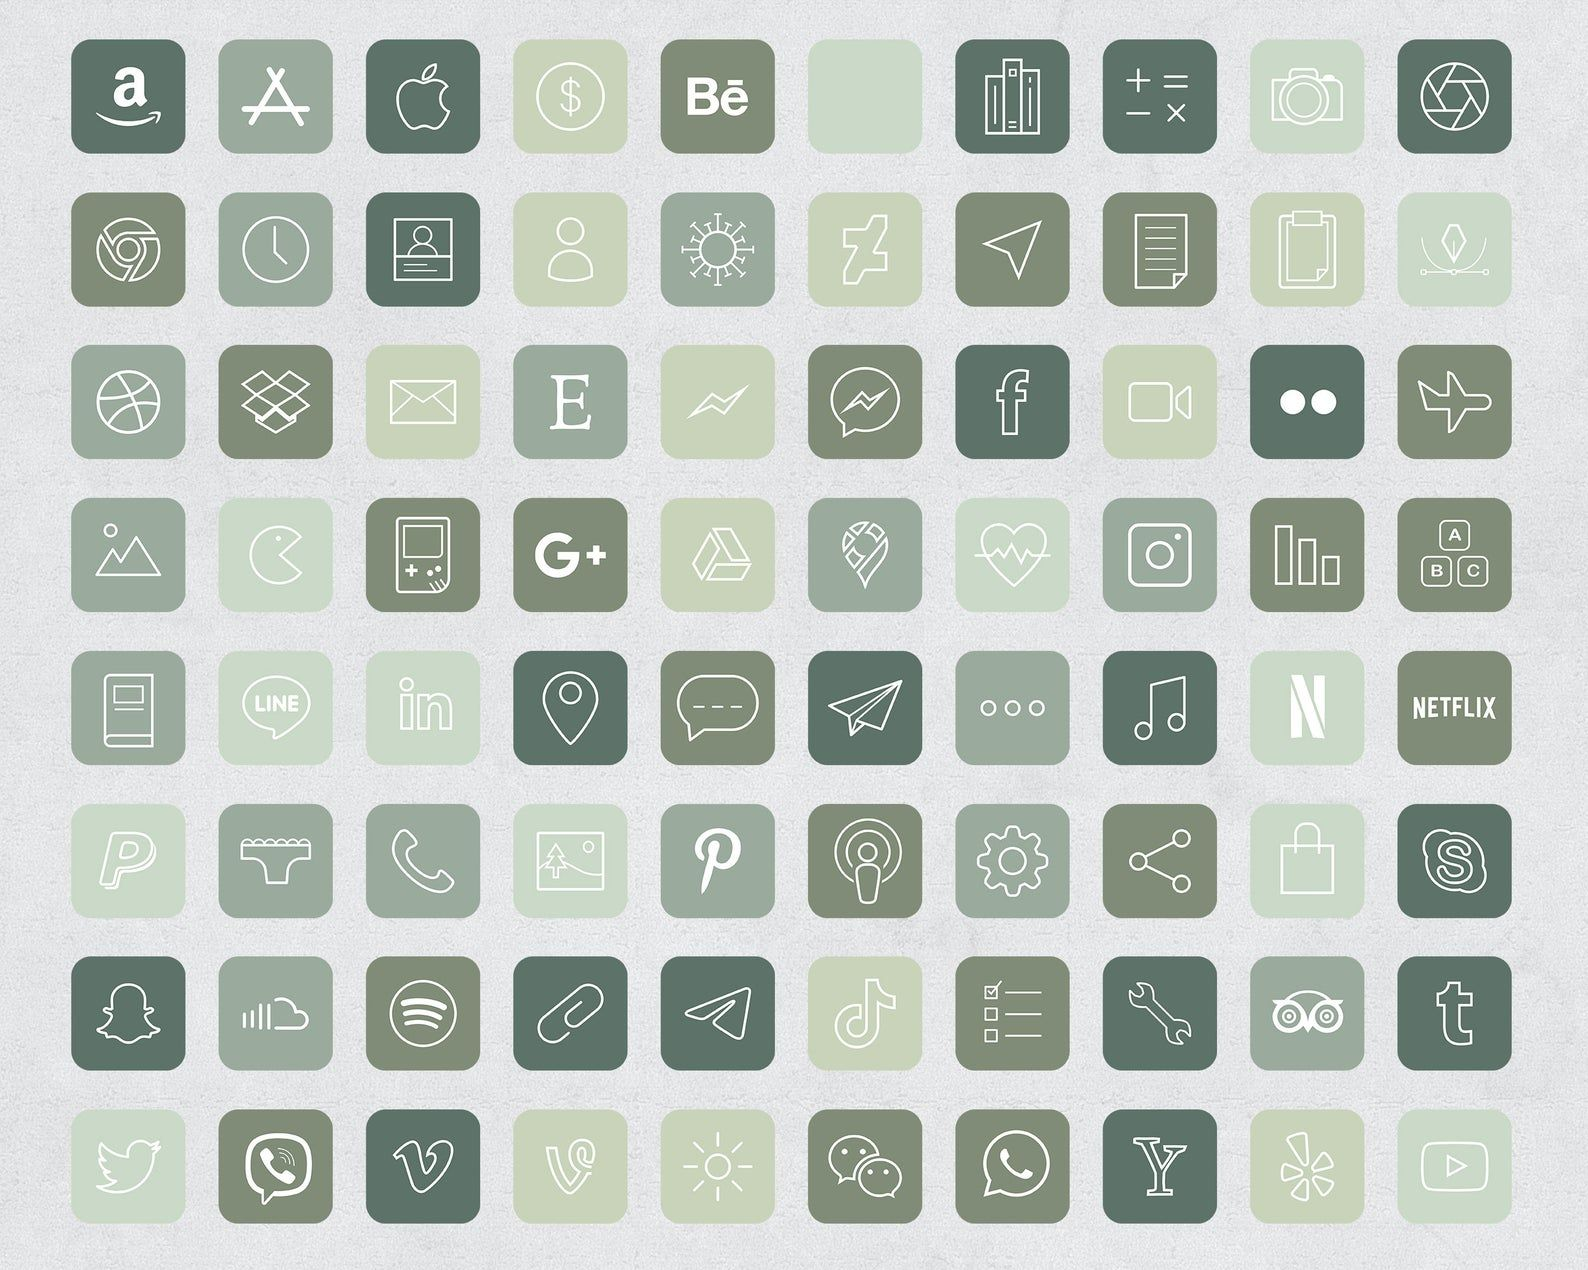 90 Forest Green Aesthetic Ios 14 App Icons Social Media Icons Ios14 Iphone Icon App Pack Minimalist Green Icons Green Aesthetic Icon Iphone Wallpaper App App Icon Iphone Icon